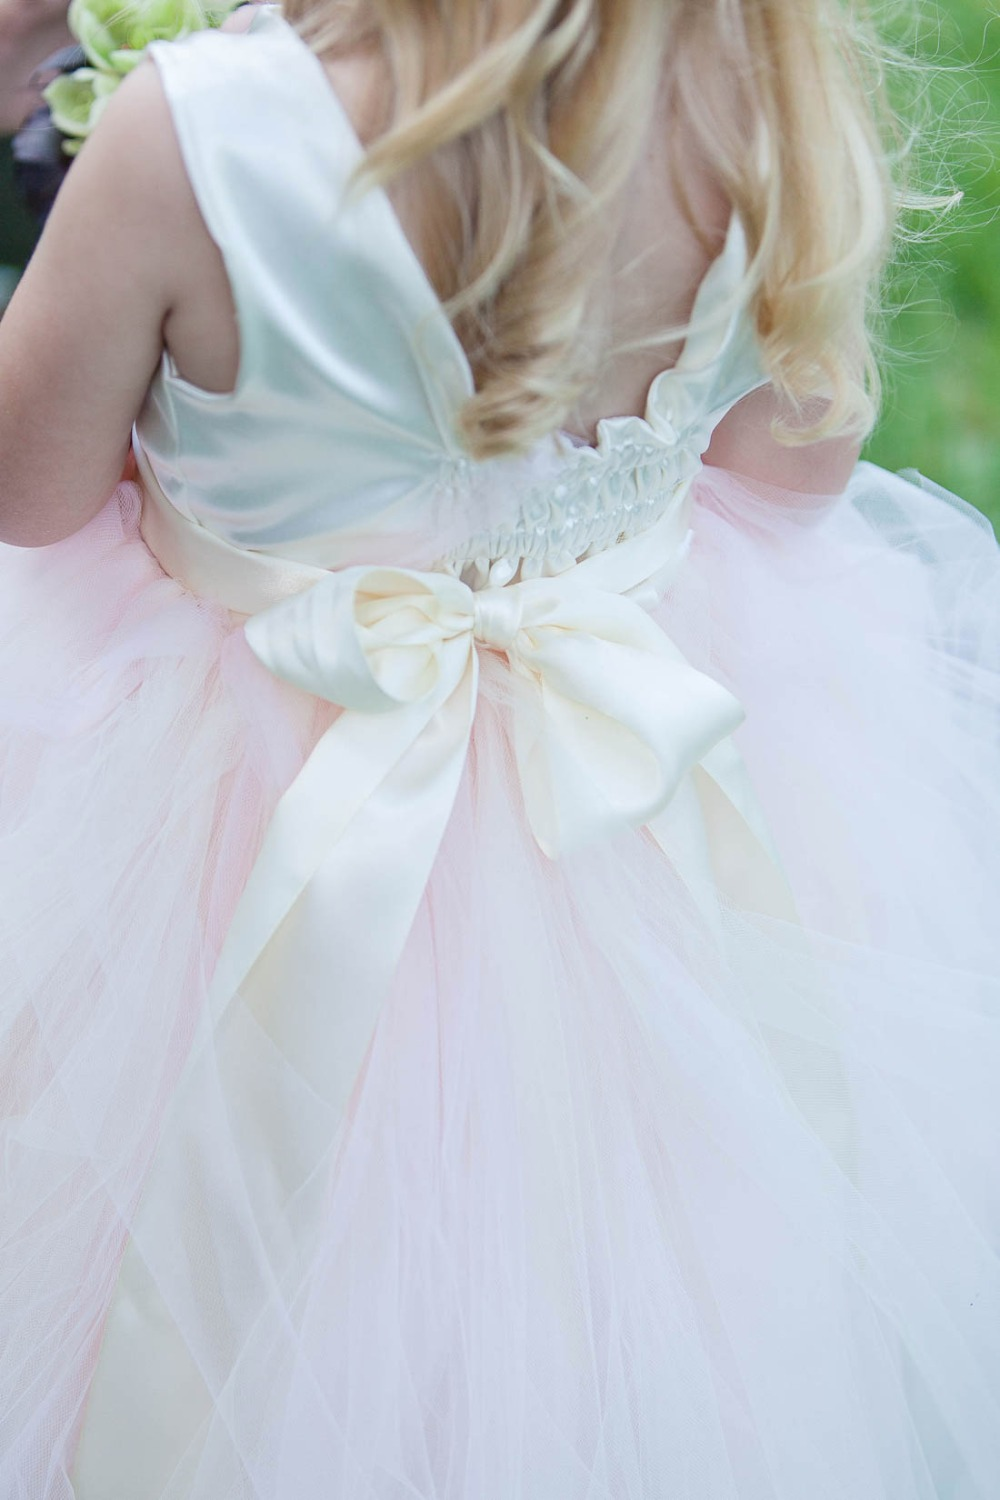 Flower girl dress detail